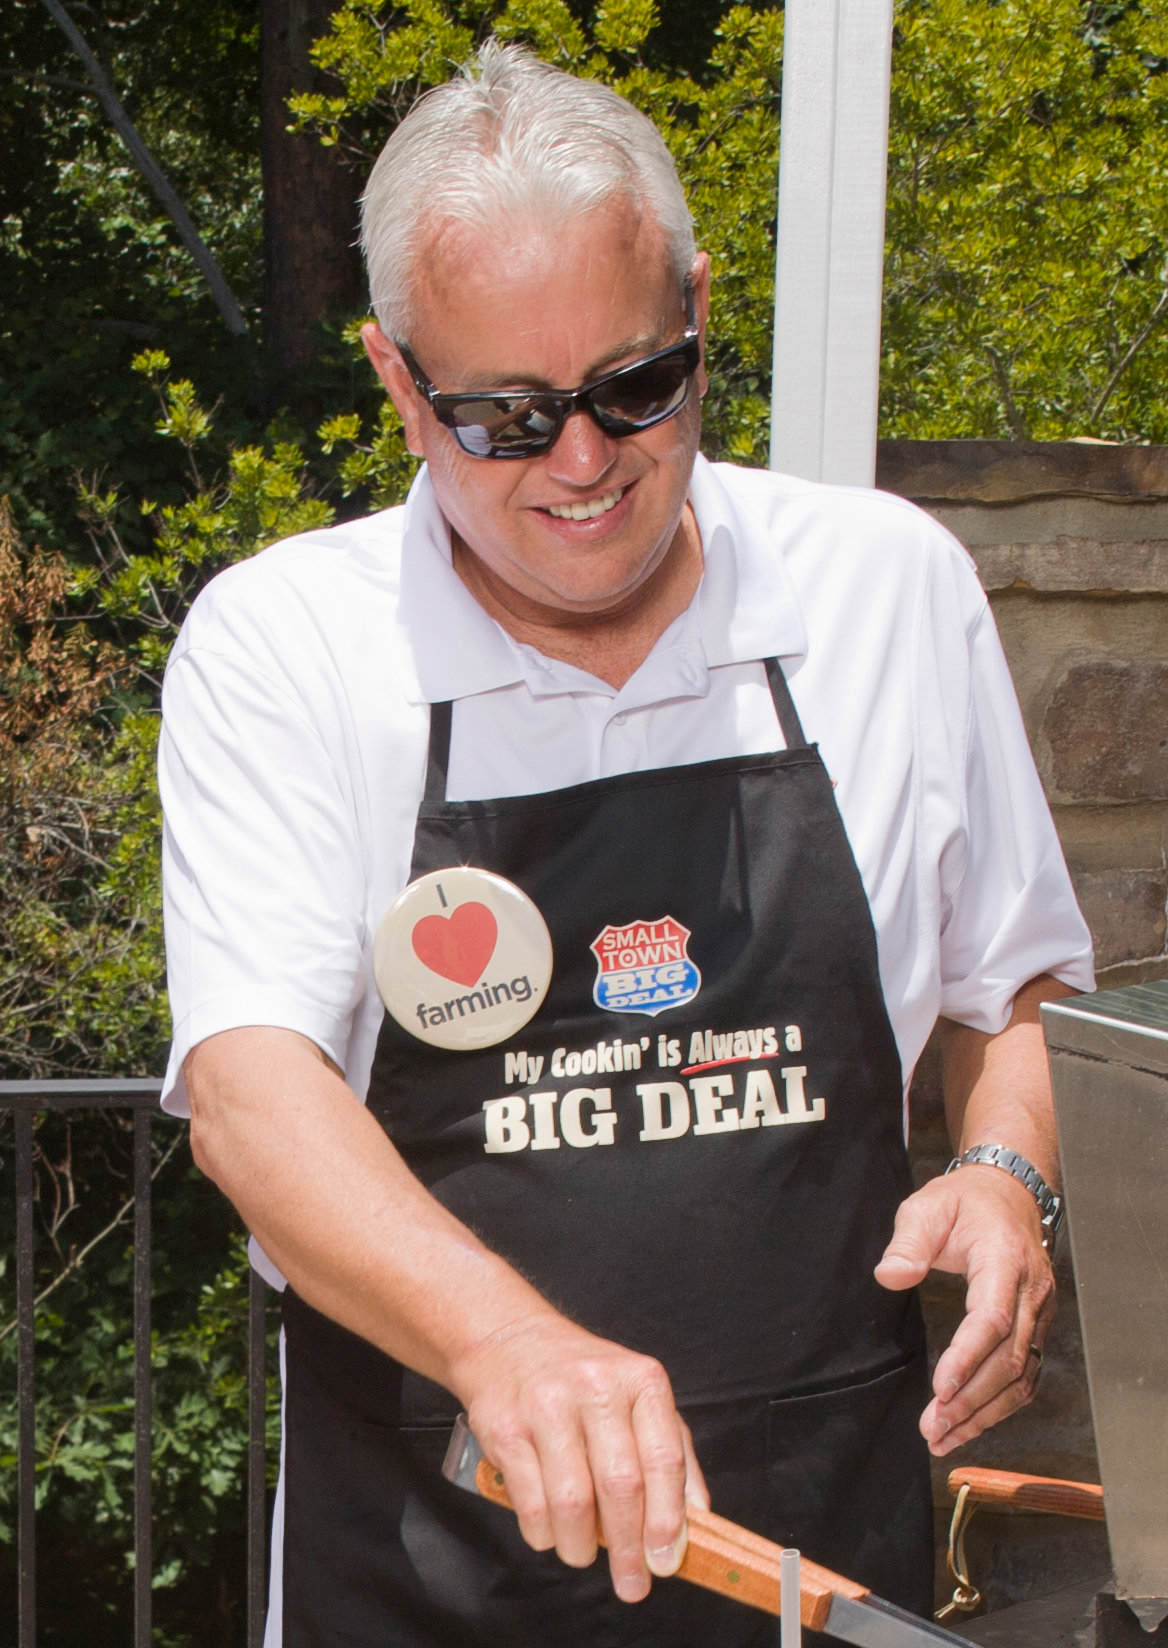 Grilling Apron STAPR